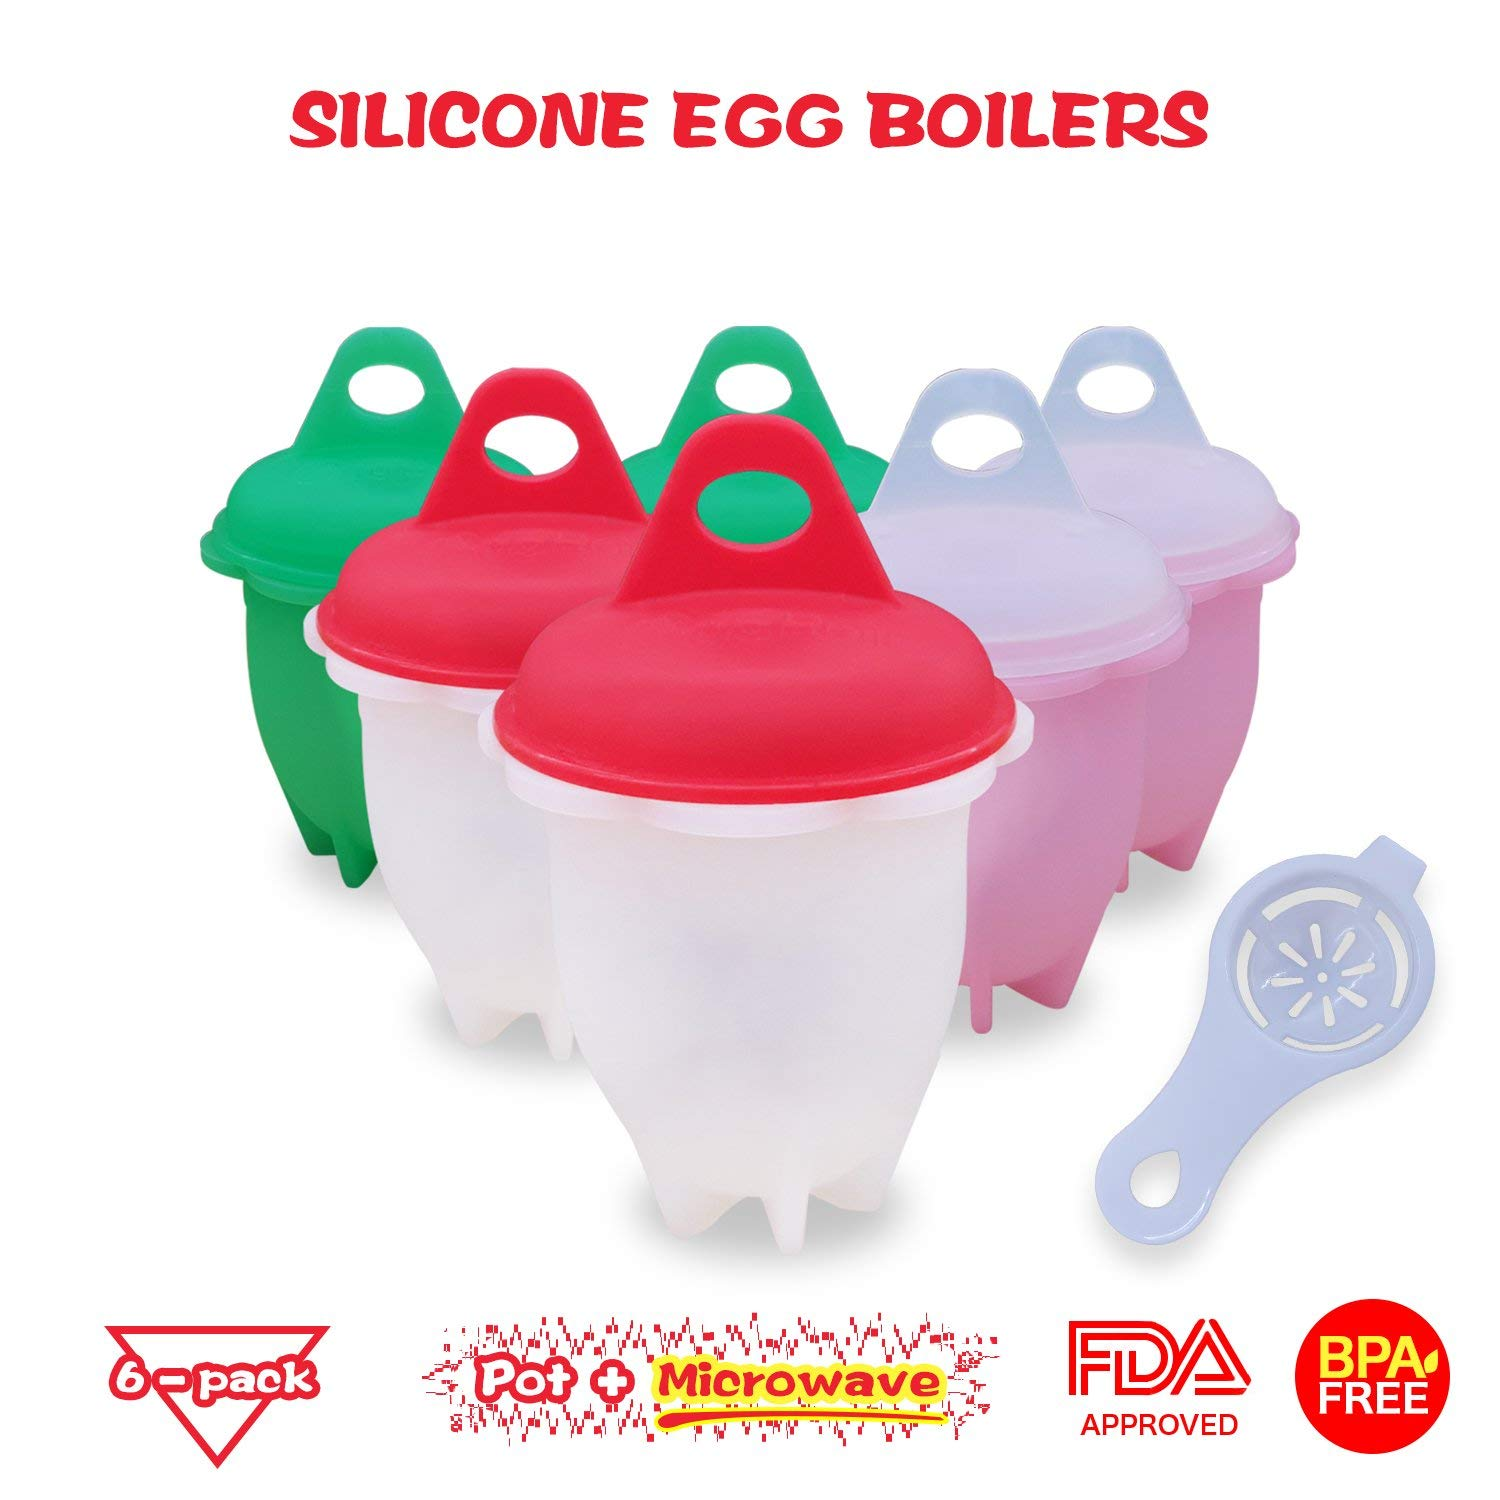 Food-Grade Non Stick Silicone Egg Cooker   BPA Free Egg Boiler   Egg Poacher Without Shell   High Temperature Resistant Egg Boil Cup For All Pots & Microwave